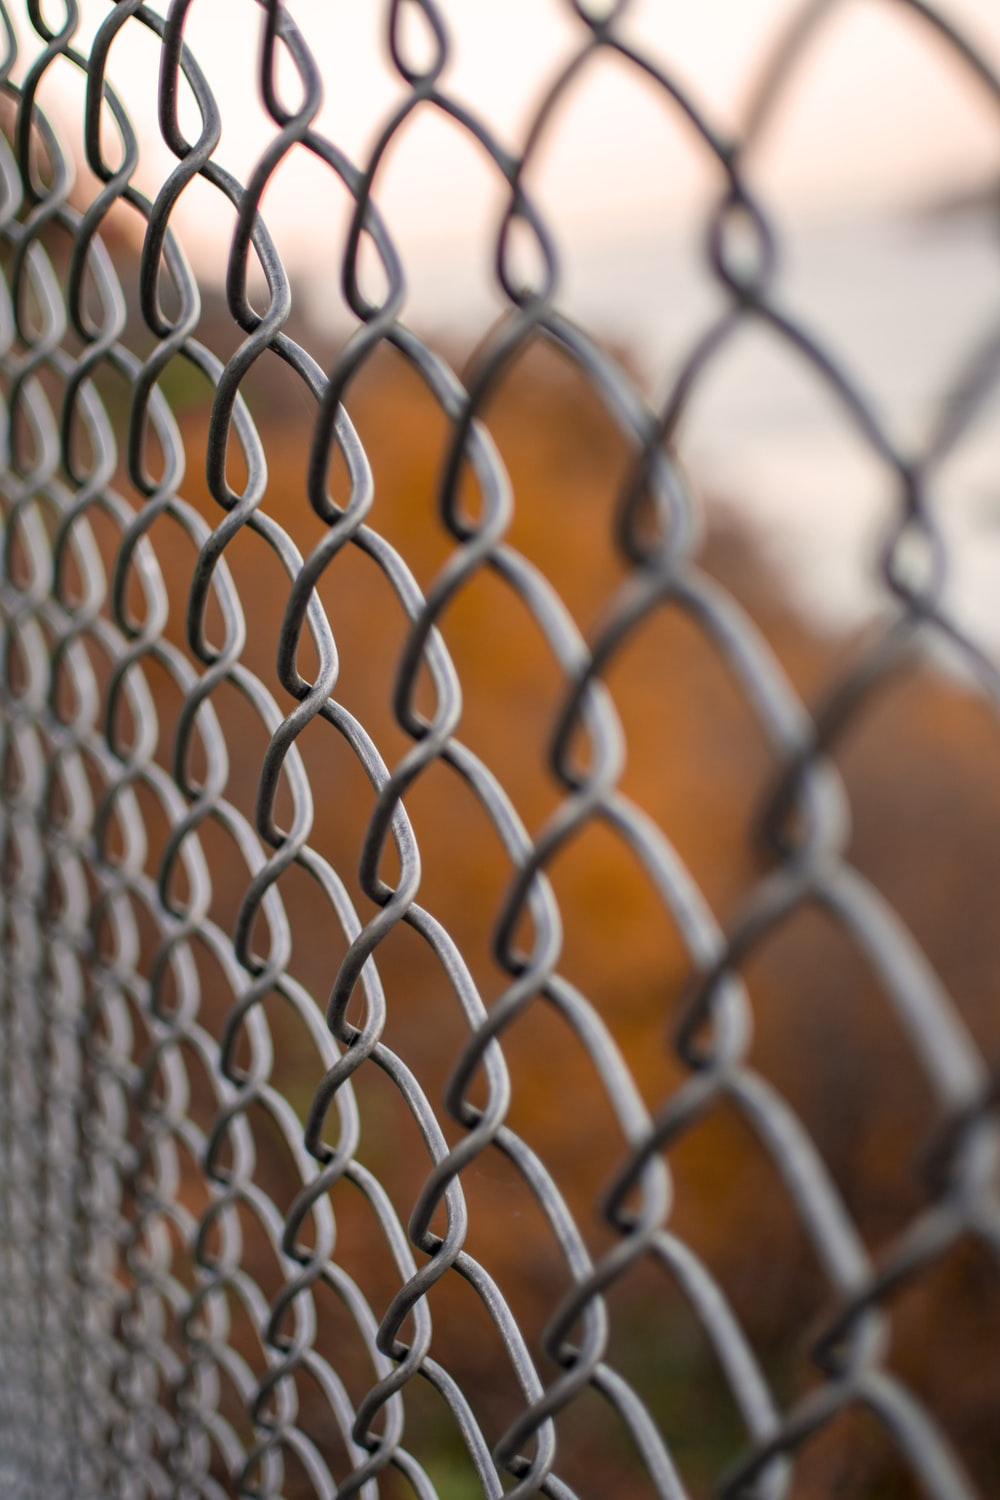 gray metal screen wire